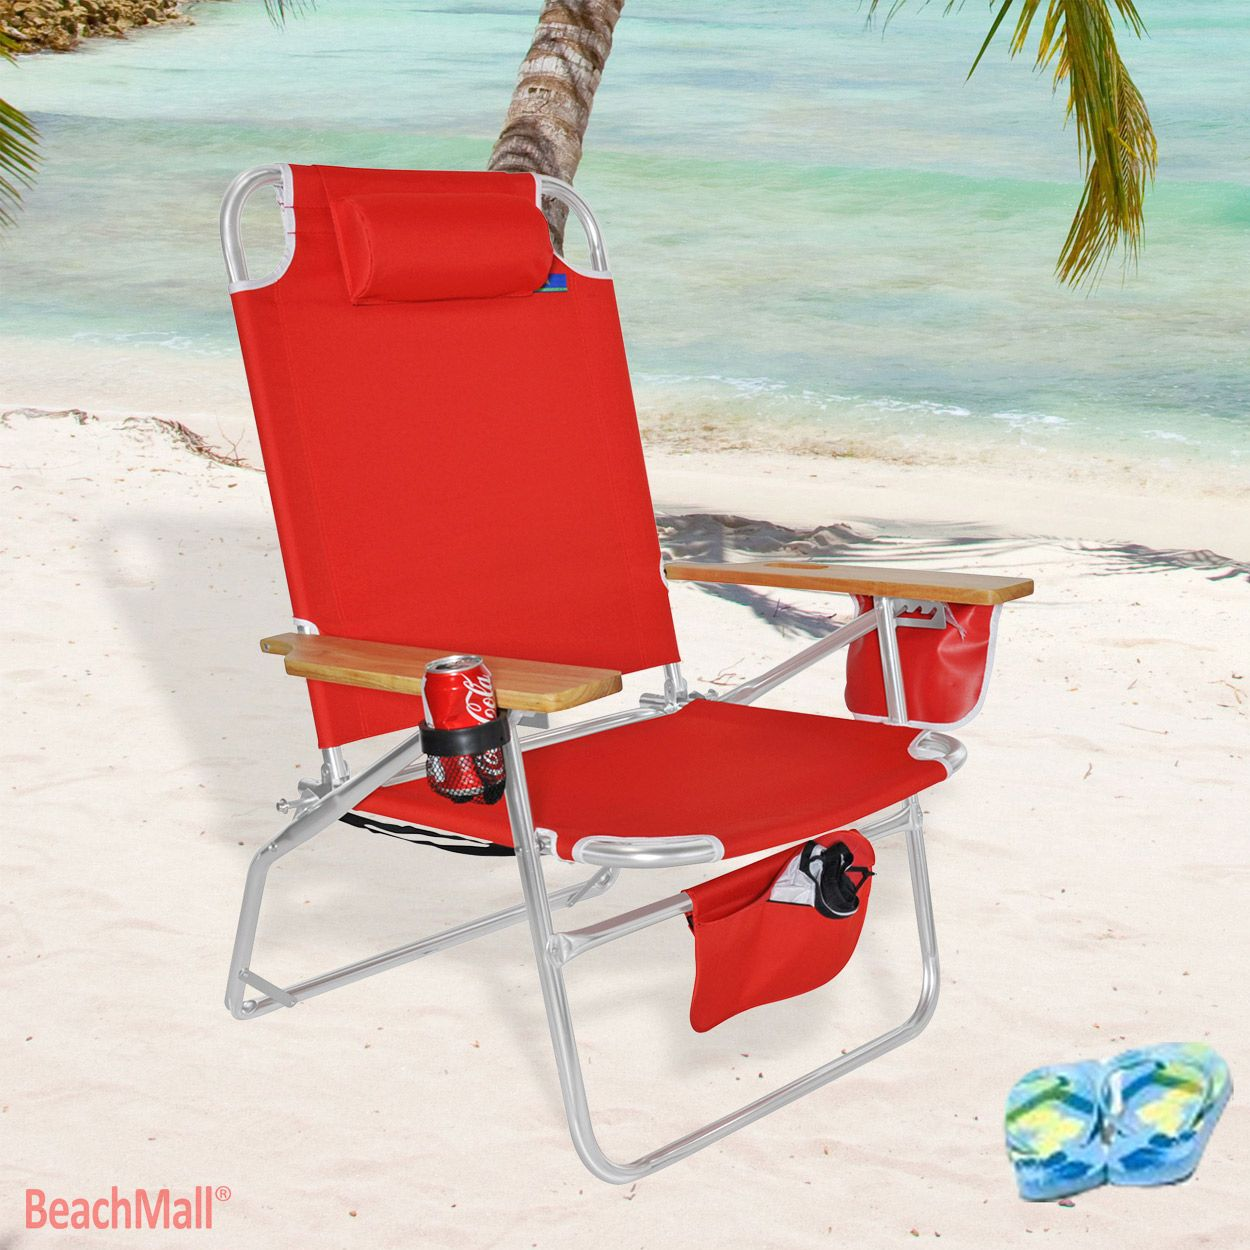 Plus Size XL Beach Chair for Big   Tall  BeachMall com. Plus Size XL Beach Chair for Big   Tall  BeachMall com   Large